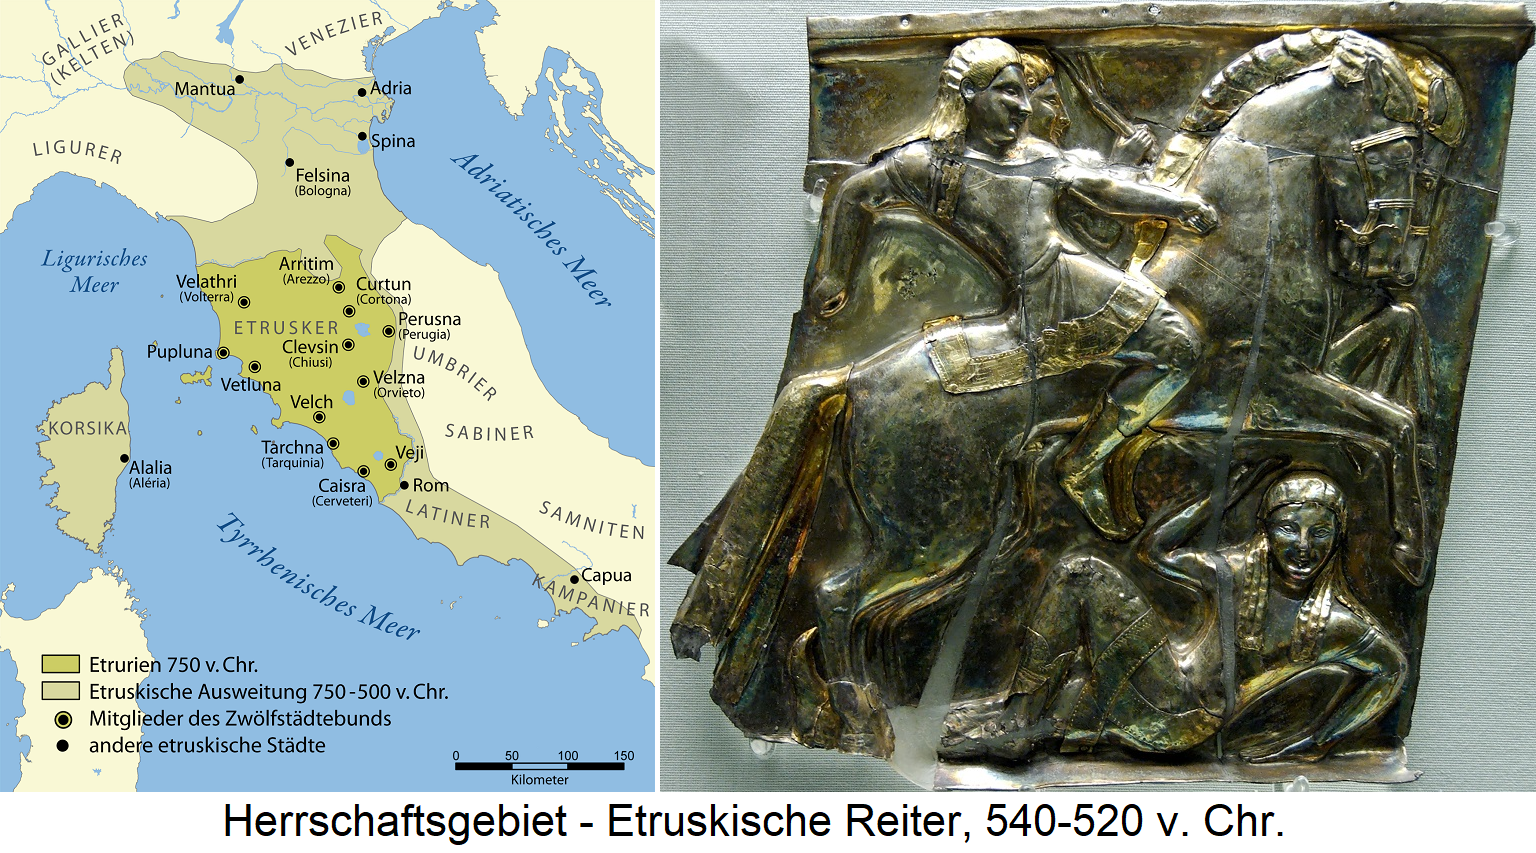 Etruscans - territory (map) and Etruscan horsemen, 540-520 BC Chr.